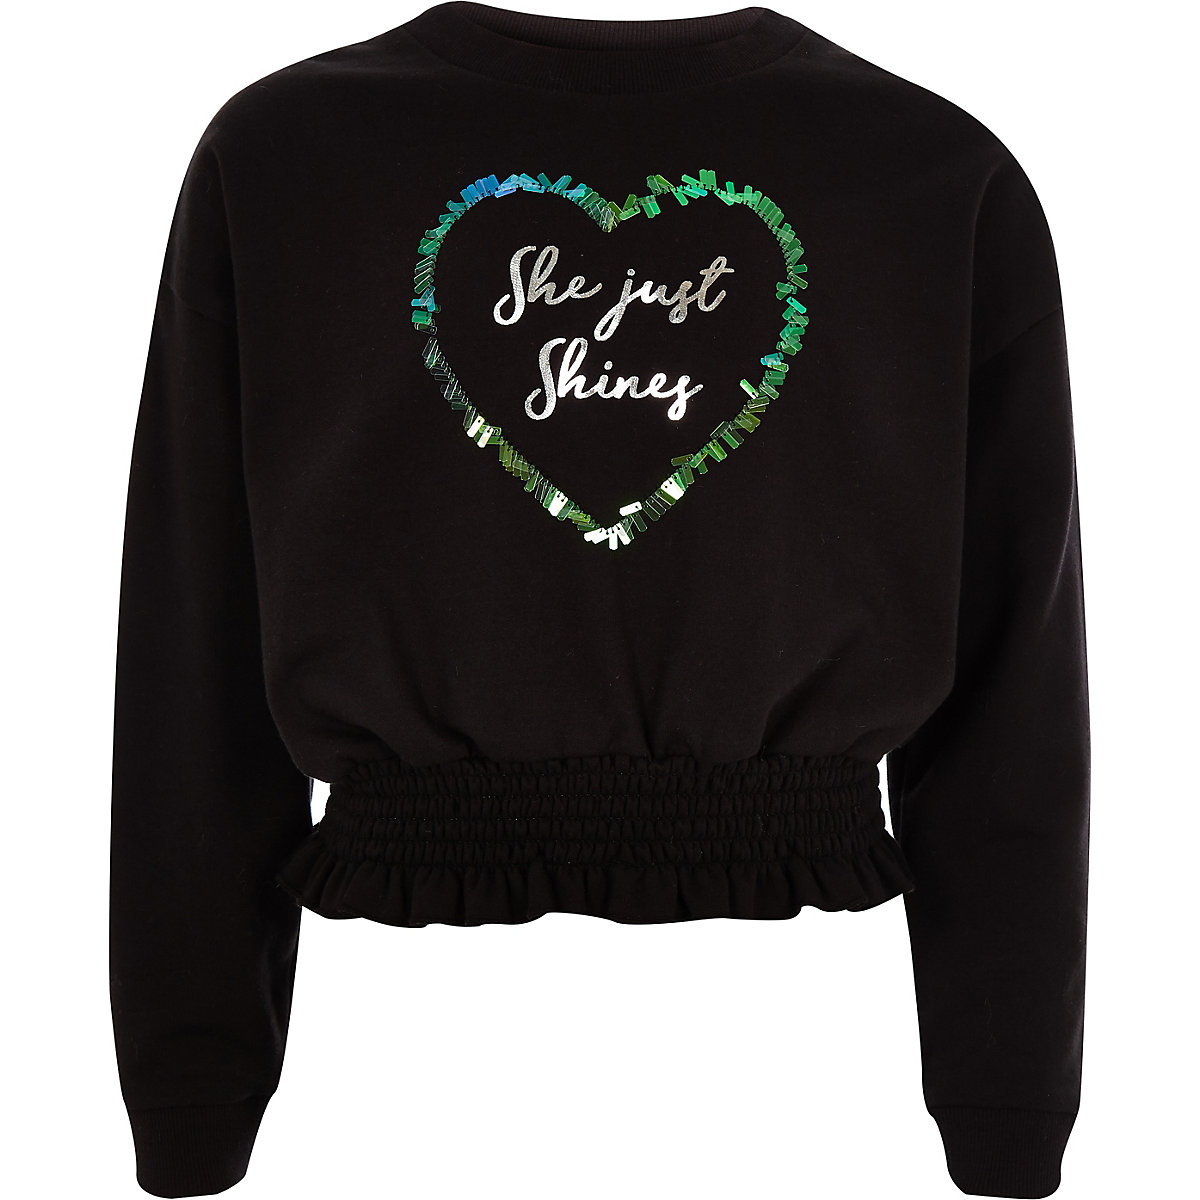 Girls black 'She just shines' sweatshirt